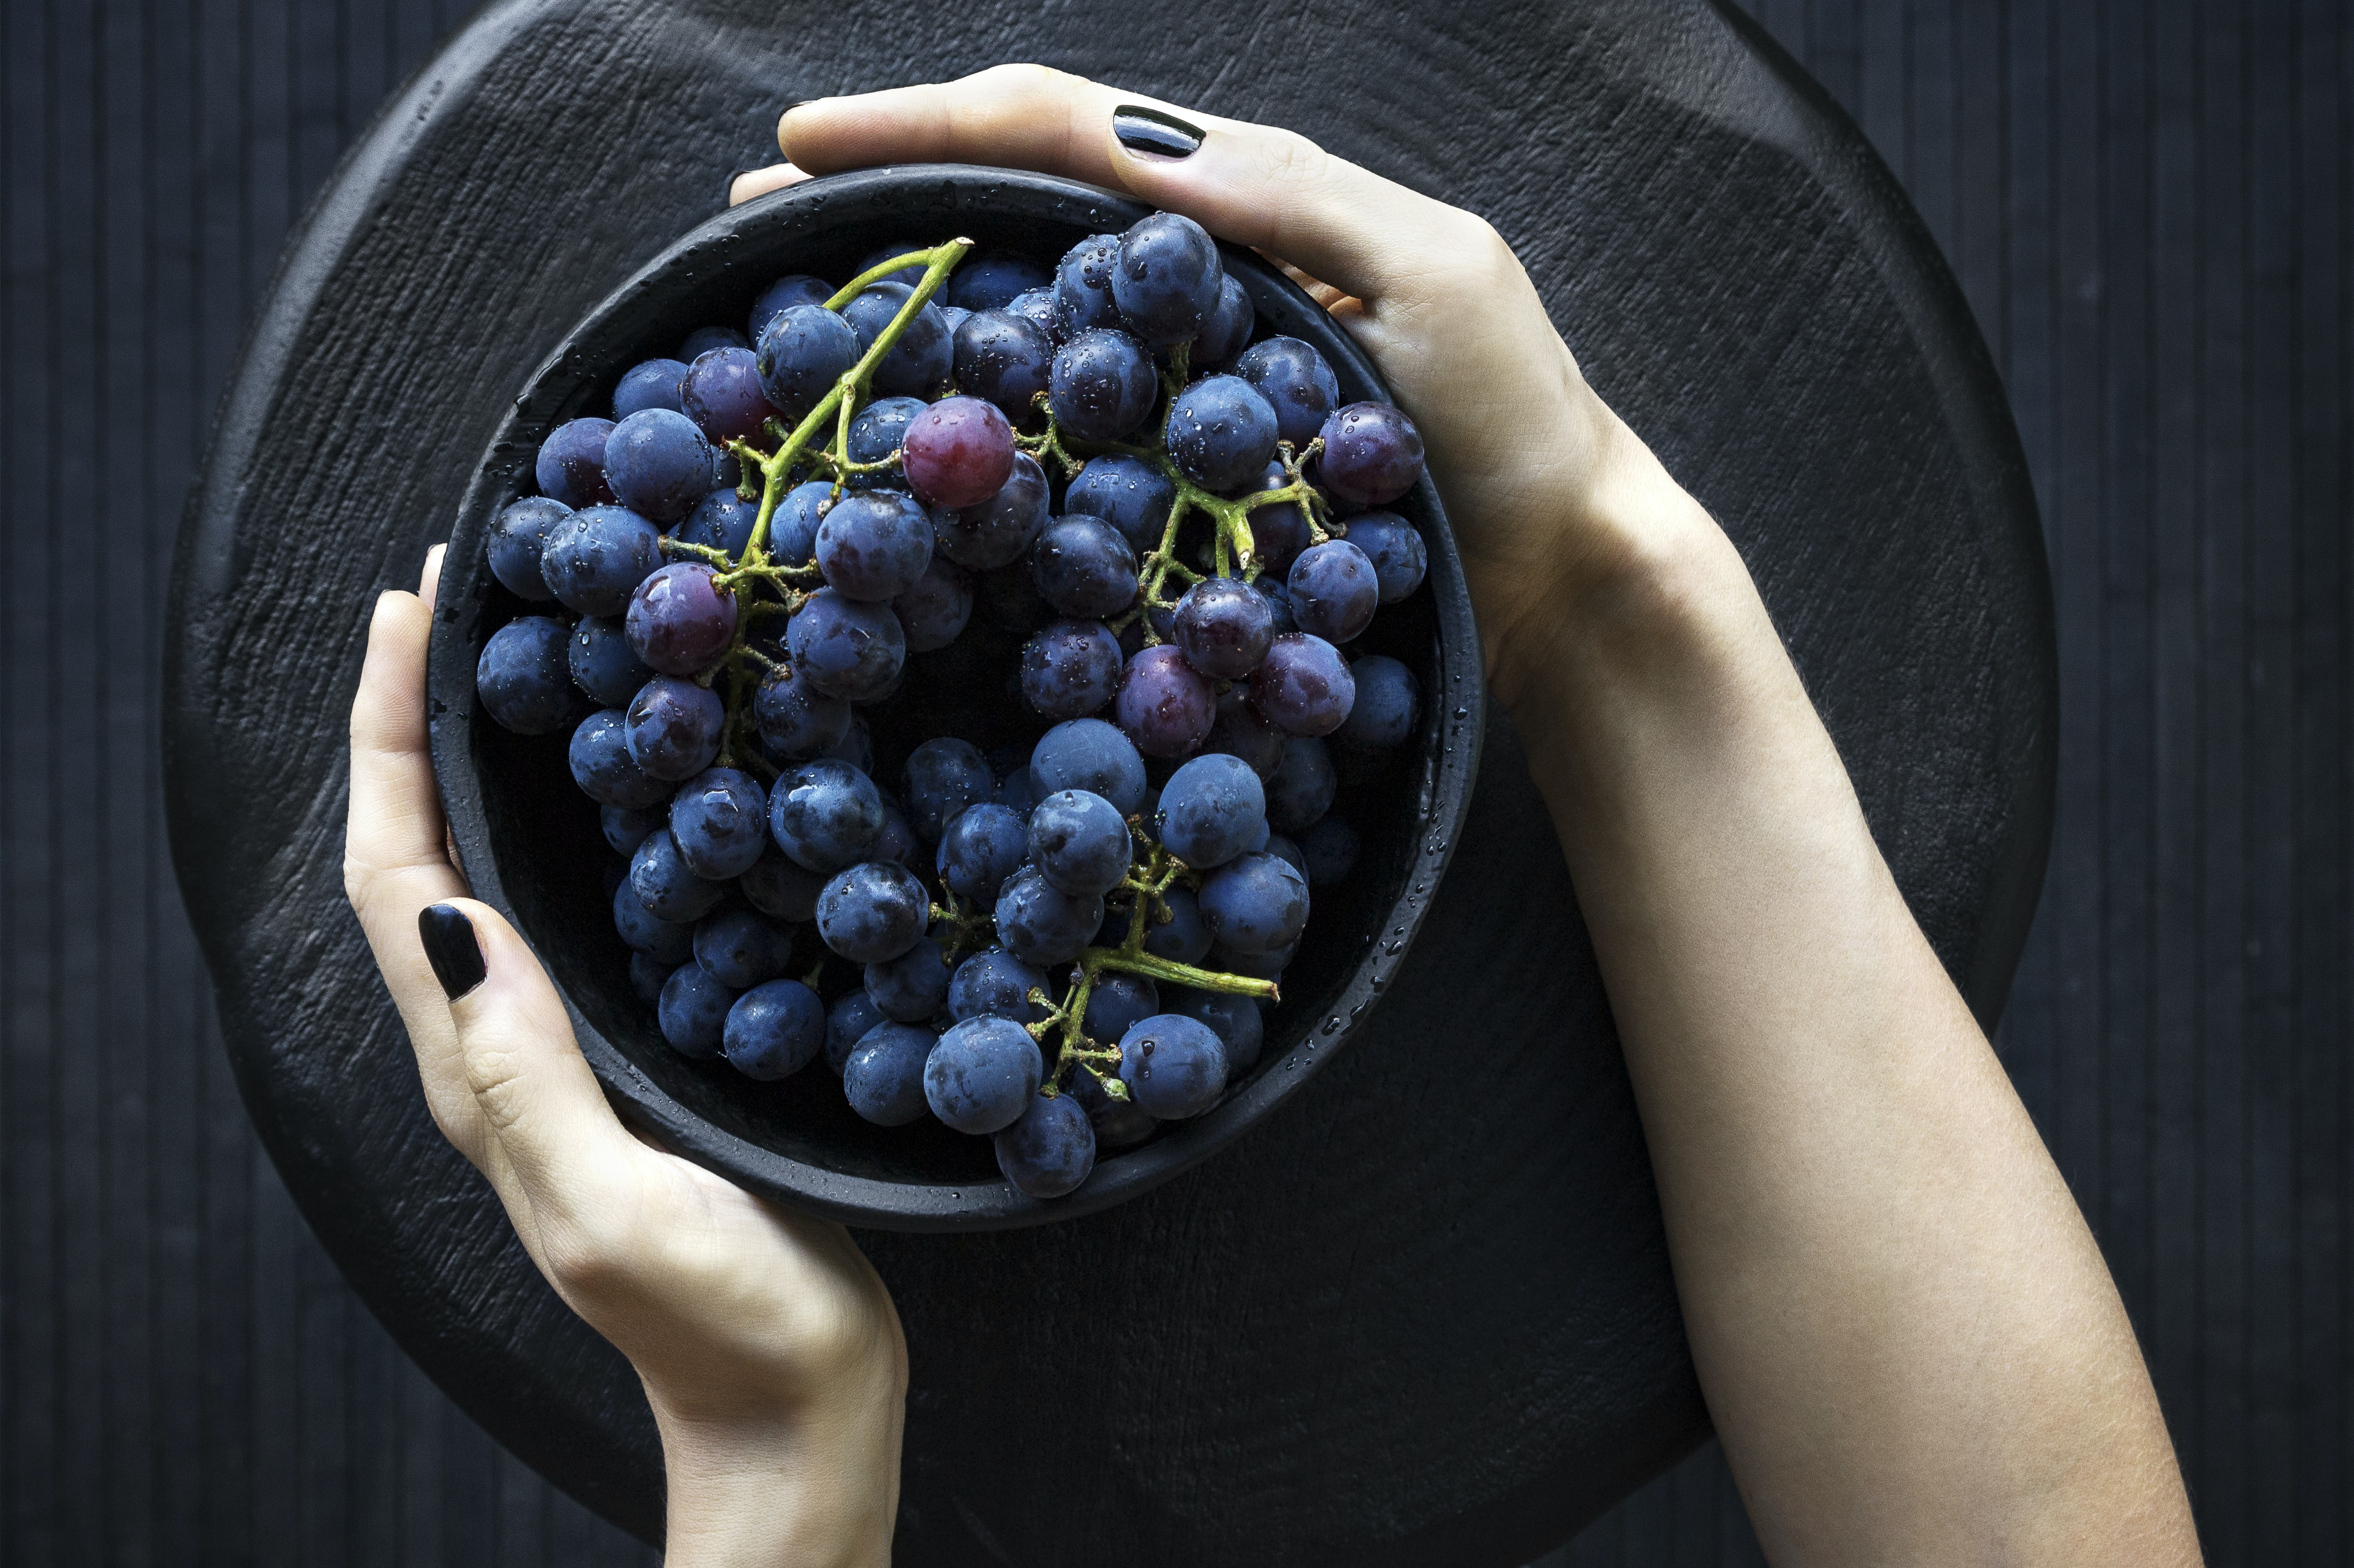 Hands hold a healthy bowl of fresh grapes